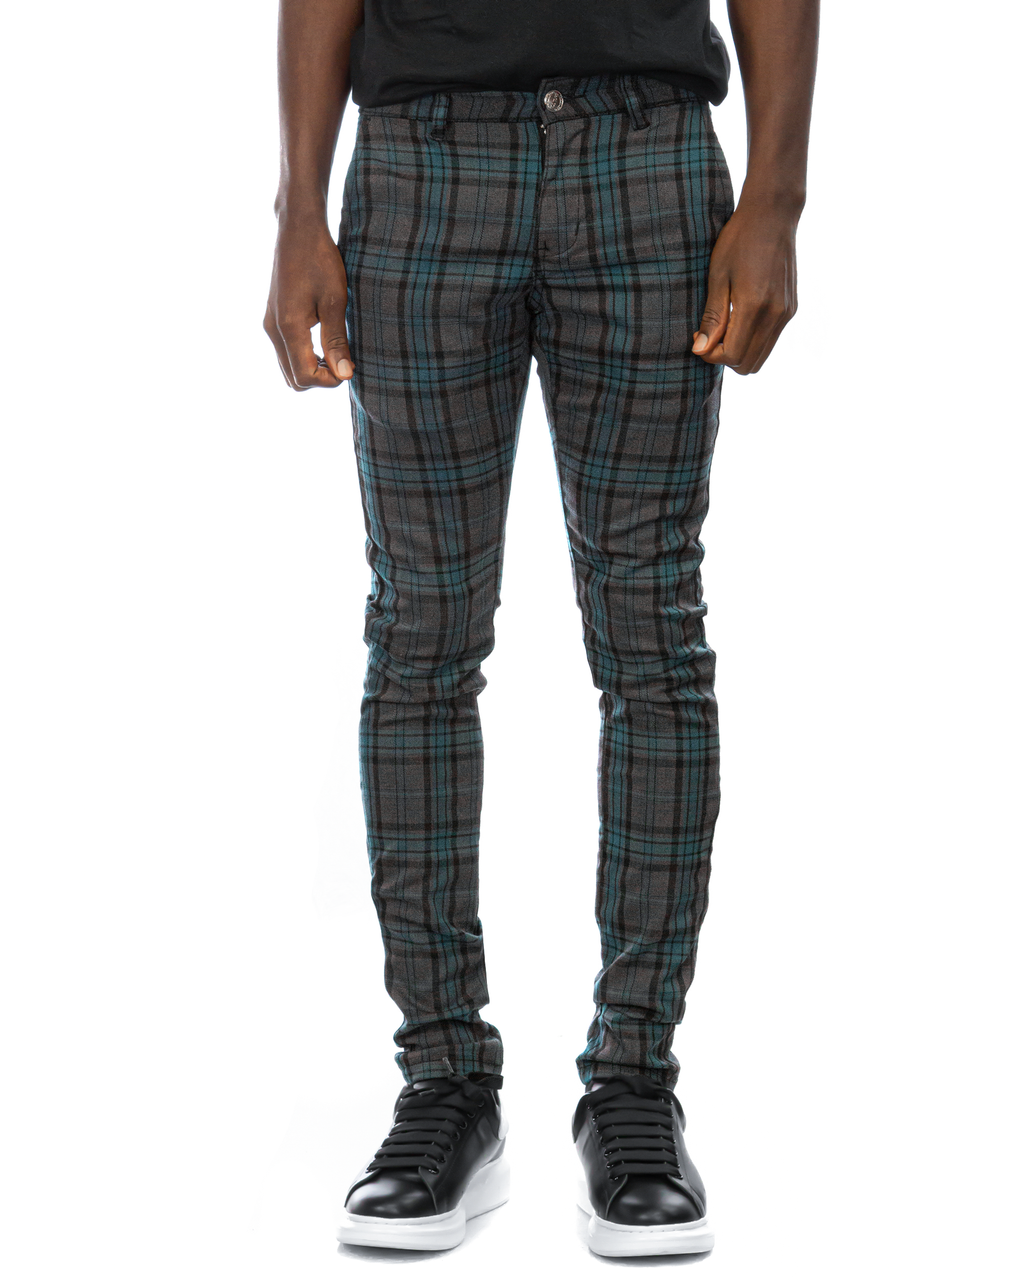 Trinity Kays Kulture Brixton Plaid Pants in Charcoal - Blue